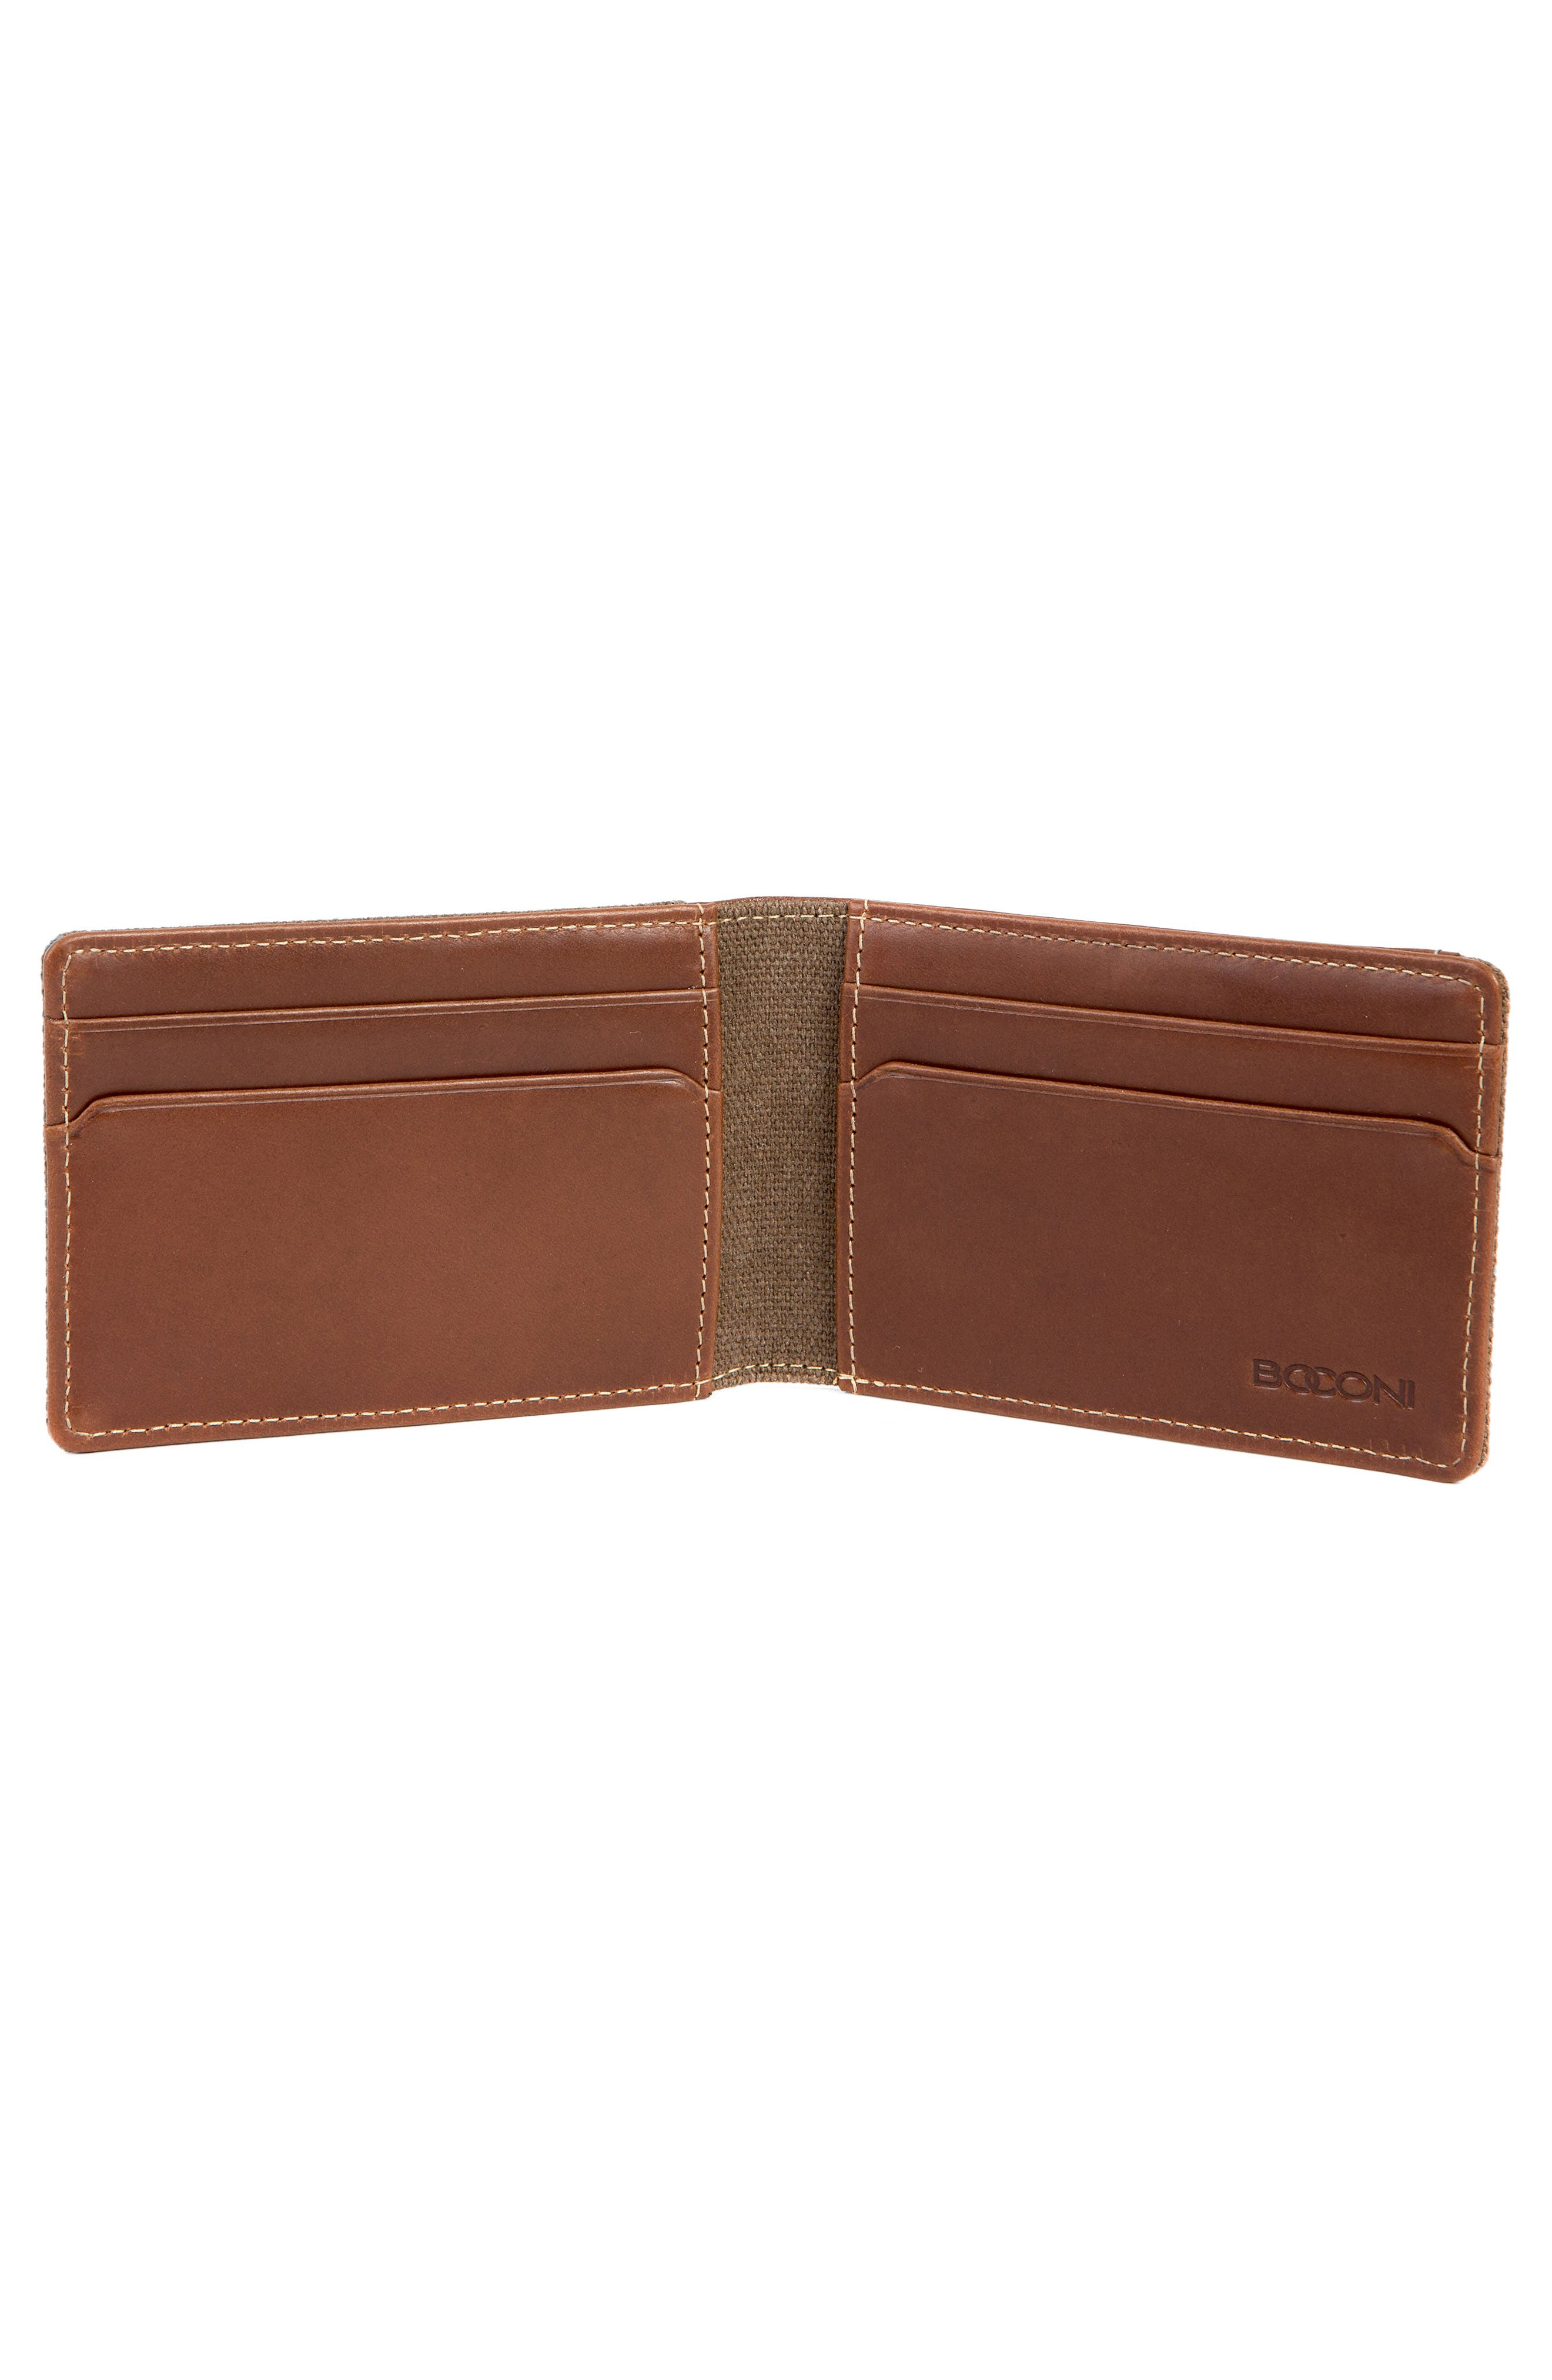 Bryant Bifold Money Clip Wallet,                             Alternate thumbnail 4, color,                             MAHOGANY/ HEATHER